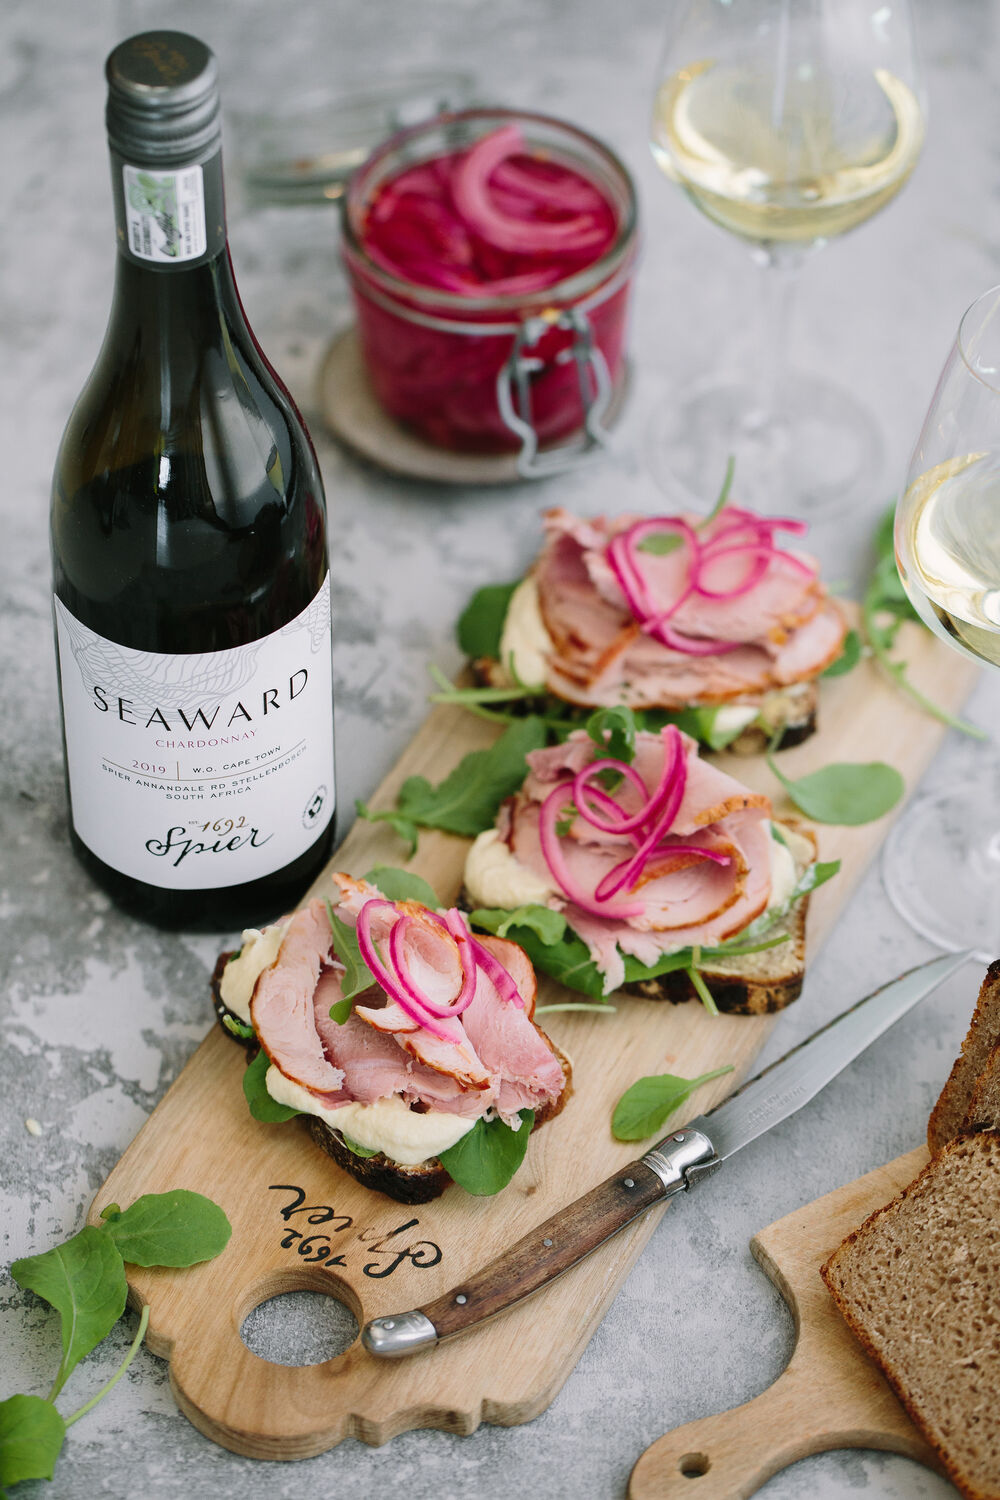 Spier Seaward Chardonnay with roasted pork sandwiches